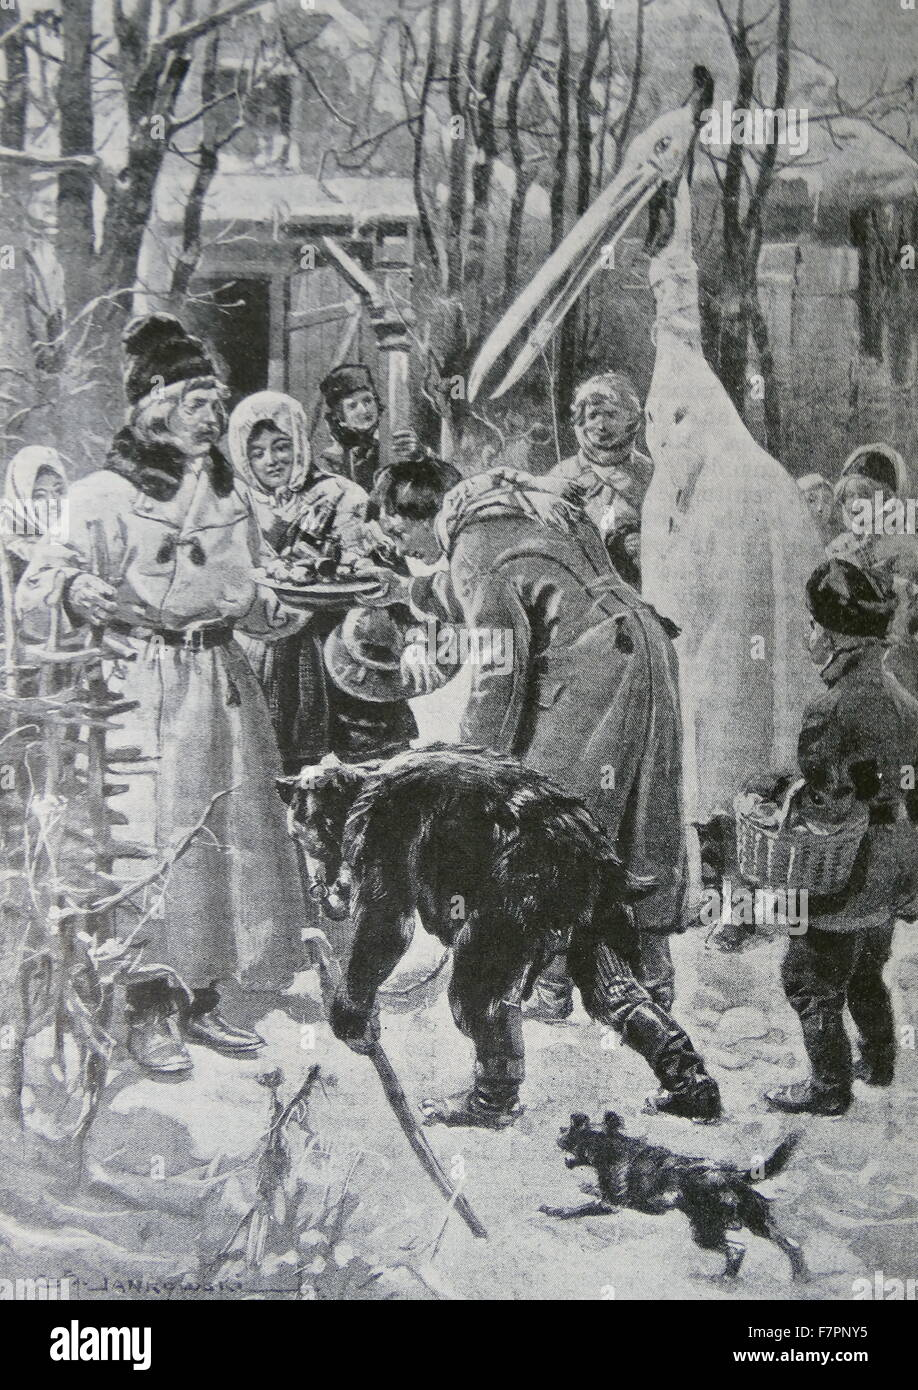 Engraving depicting Christmas in Poland: The Stork as Carol-Singer. Dated 19th Century - Stock Image